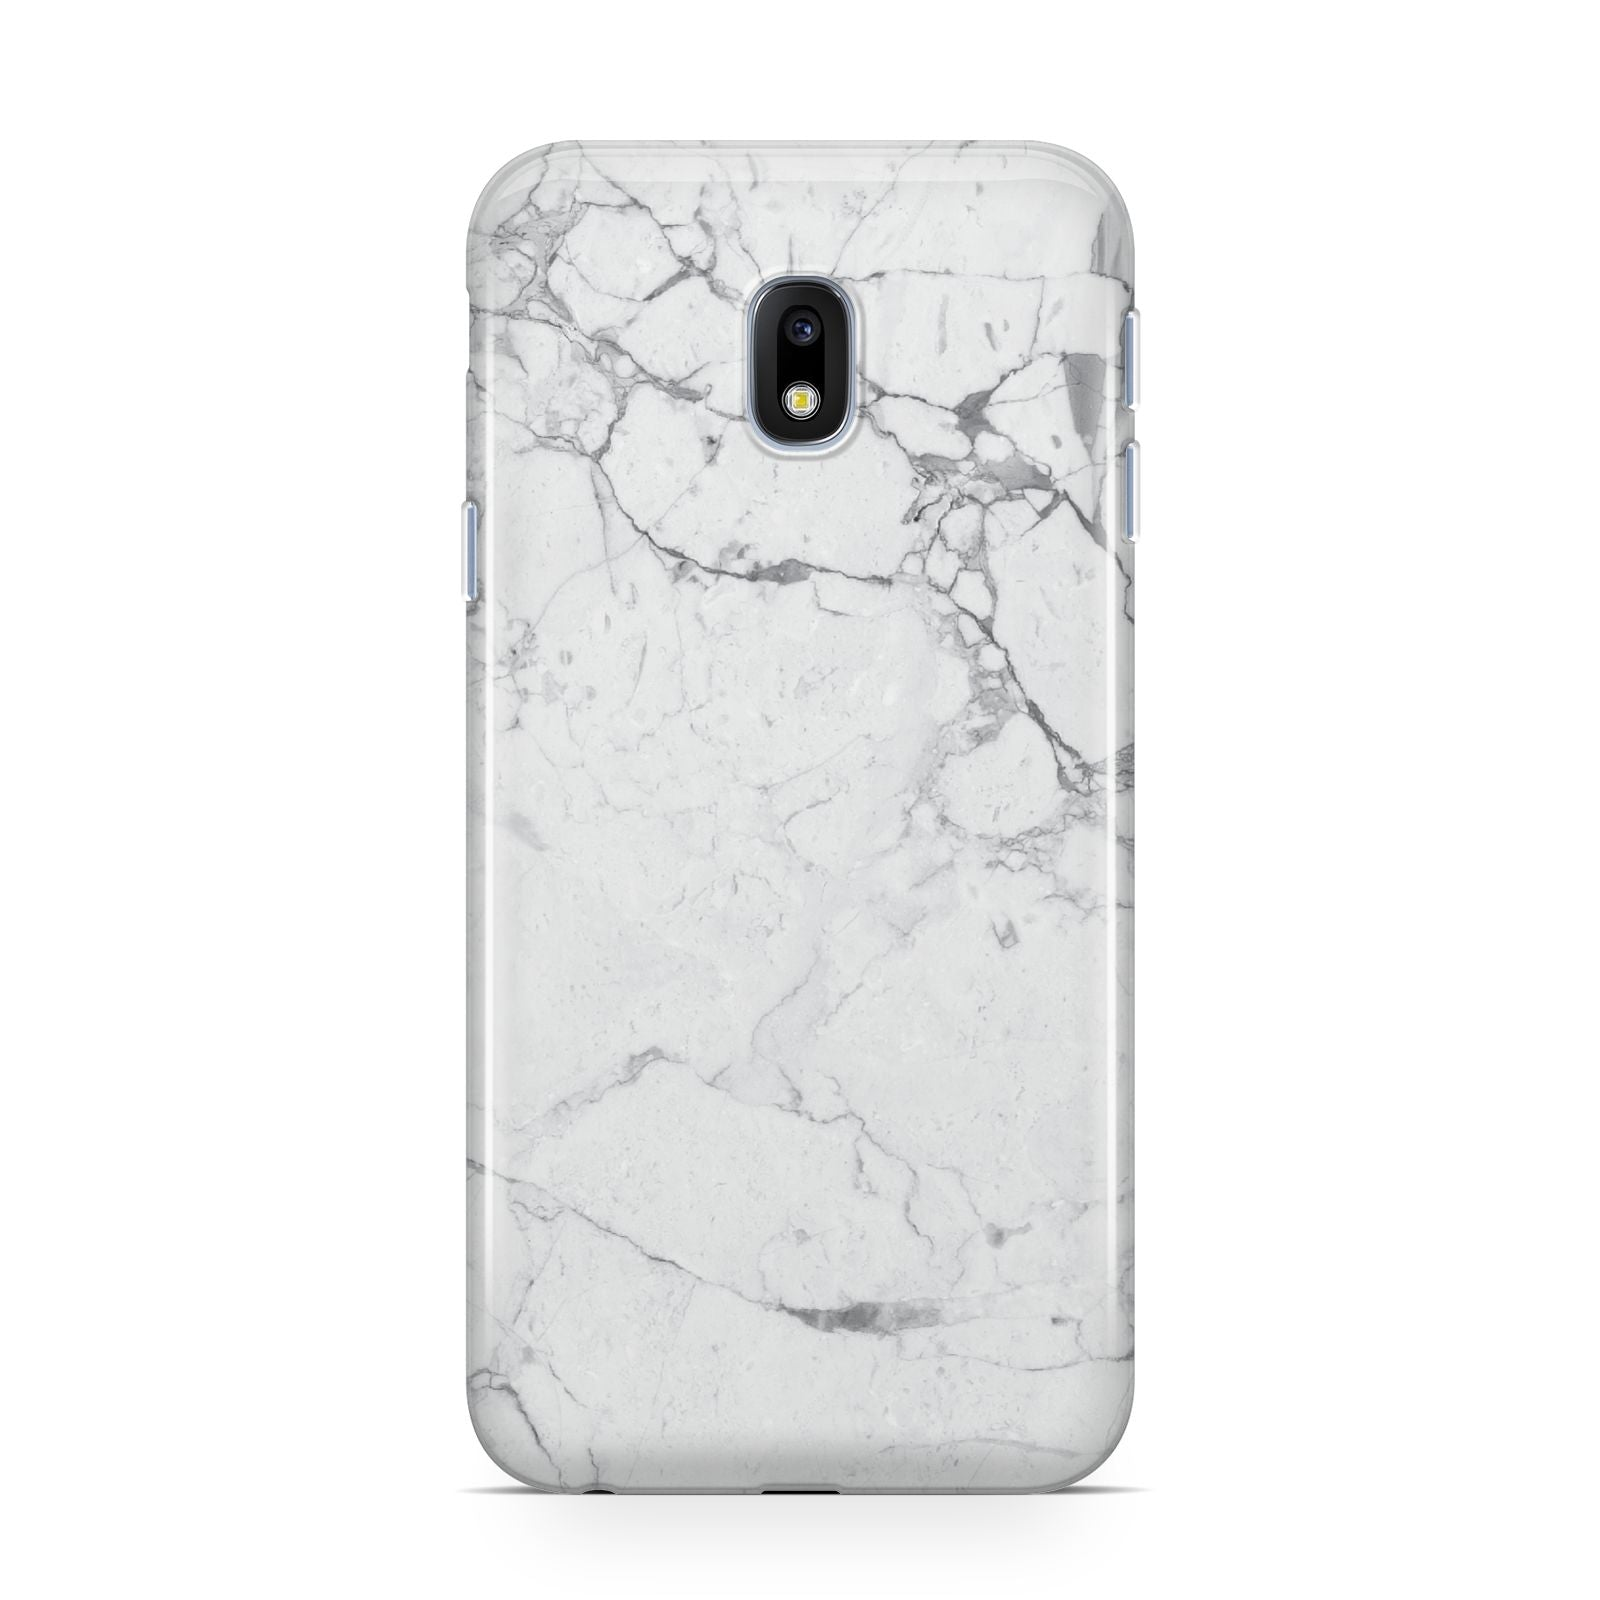 Faux Marble Effect Grey White Samsung Galaxy J3 2017 Case